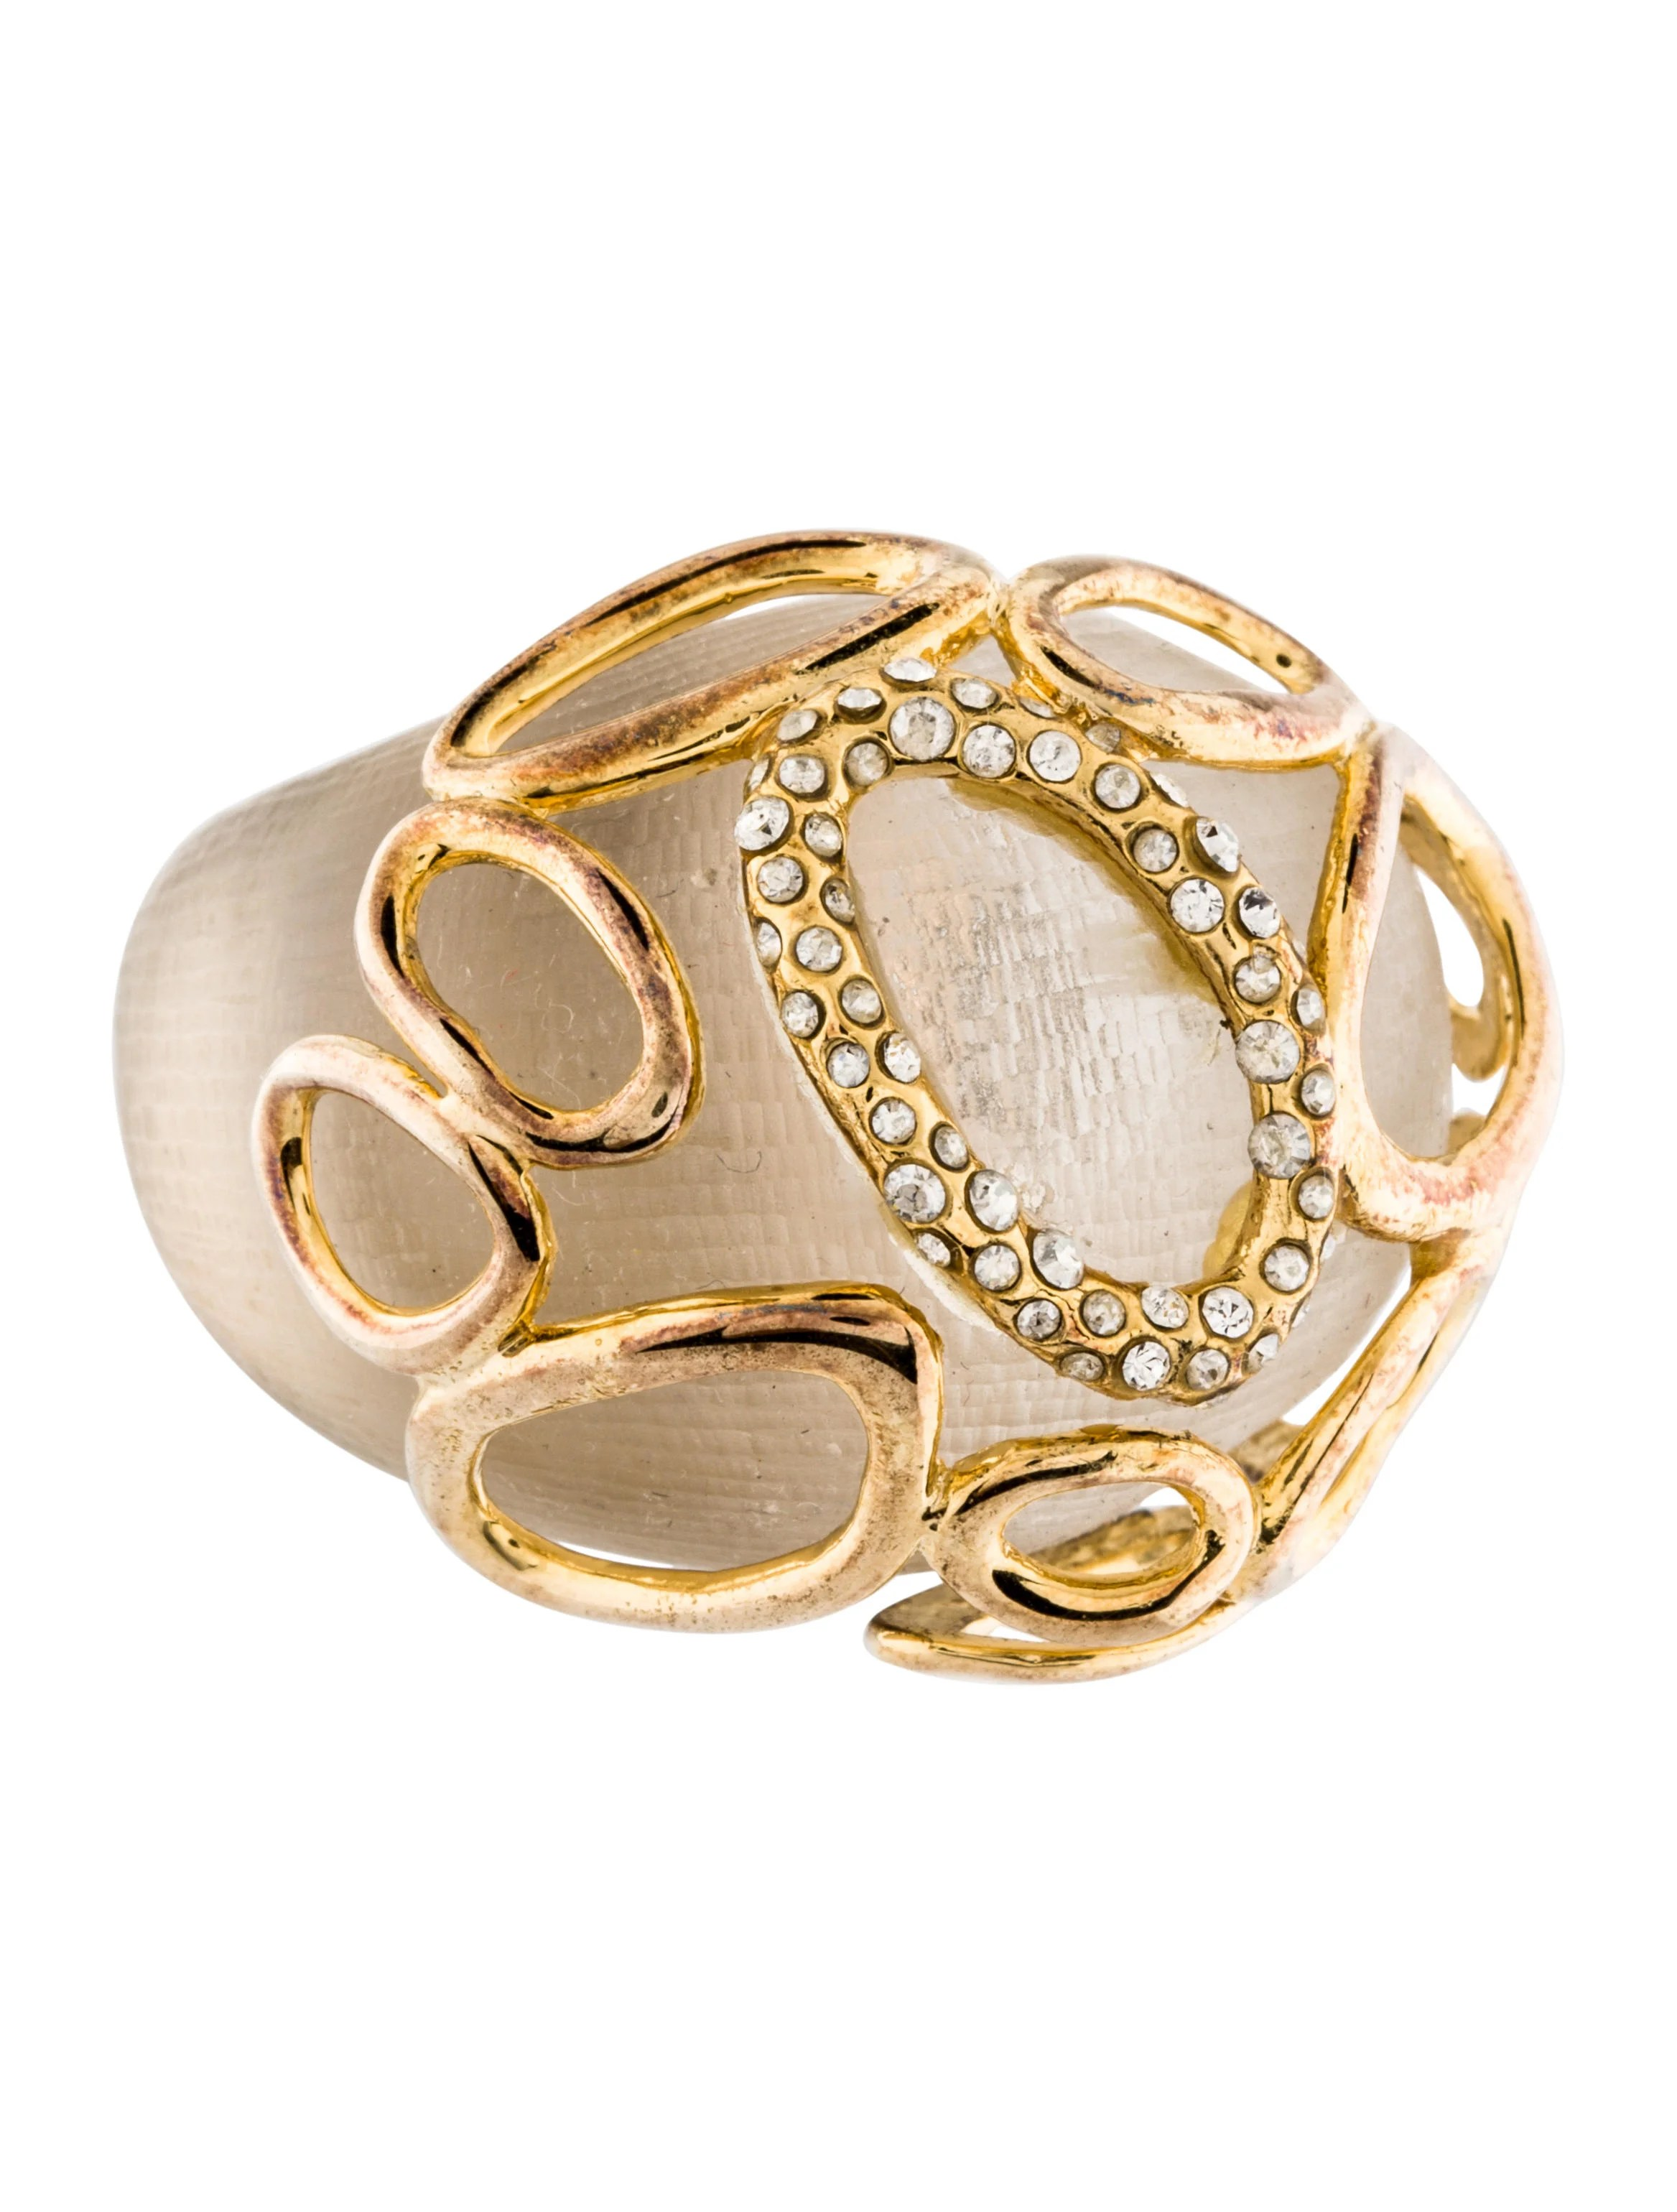 Alexis Bittar Lucite Dome Cocktail Ring